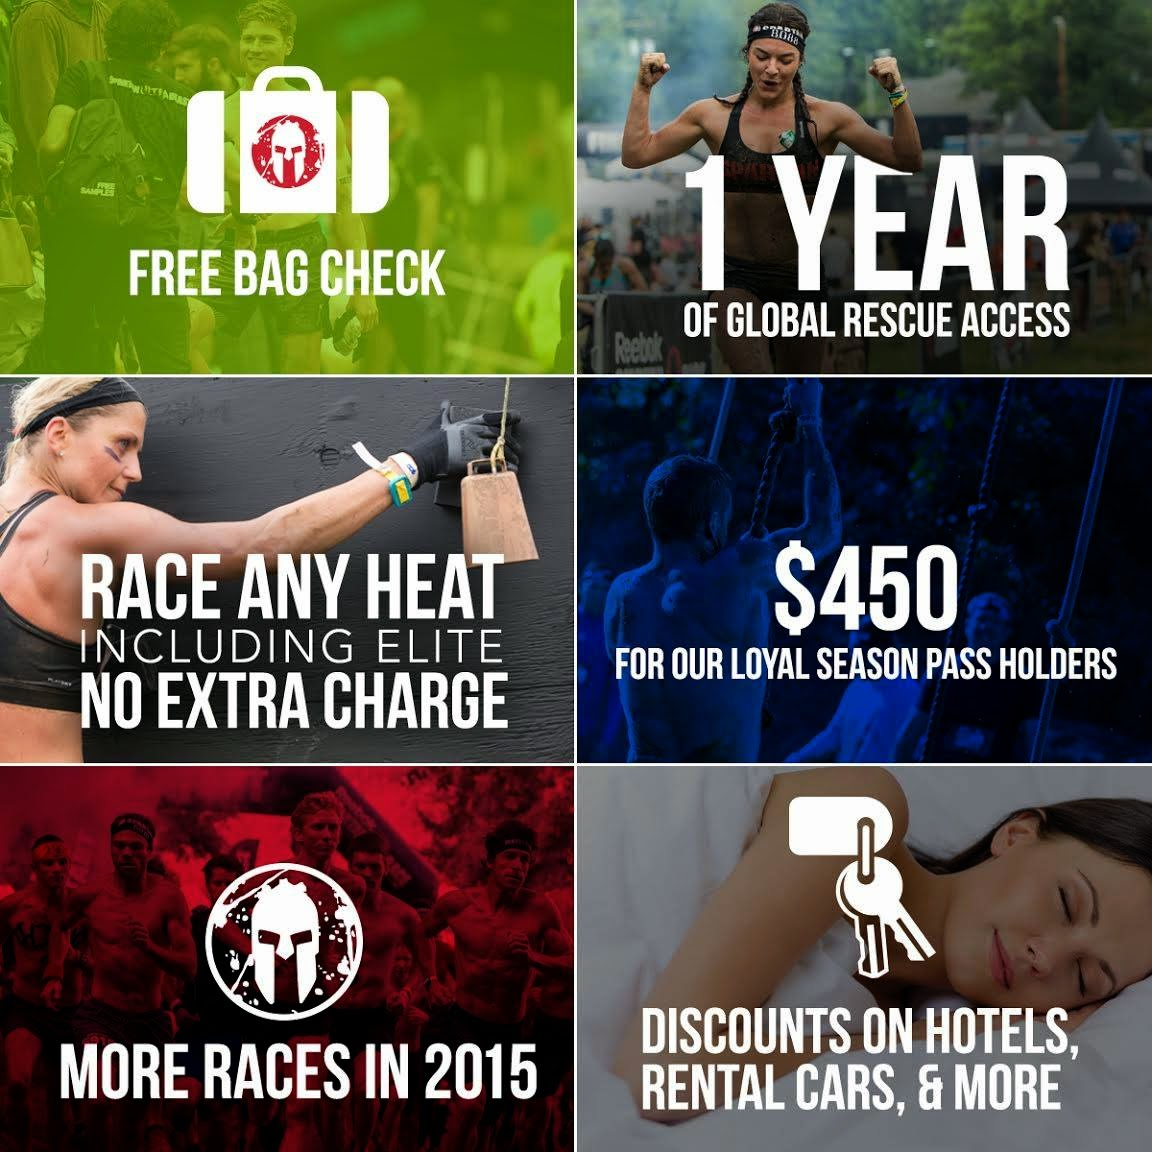 Spartan Race 2015 season pass